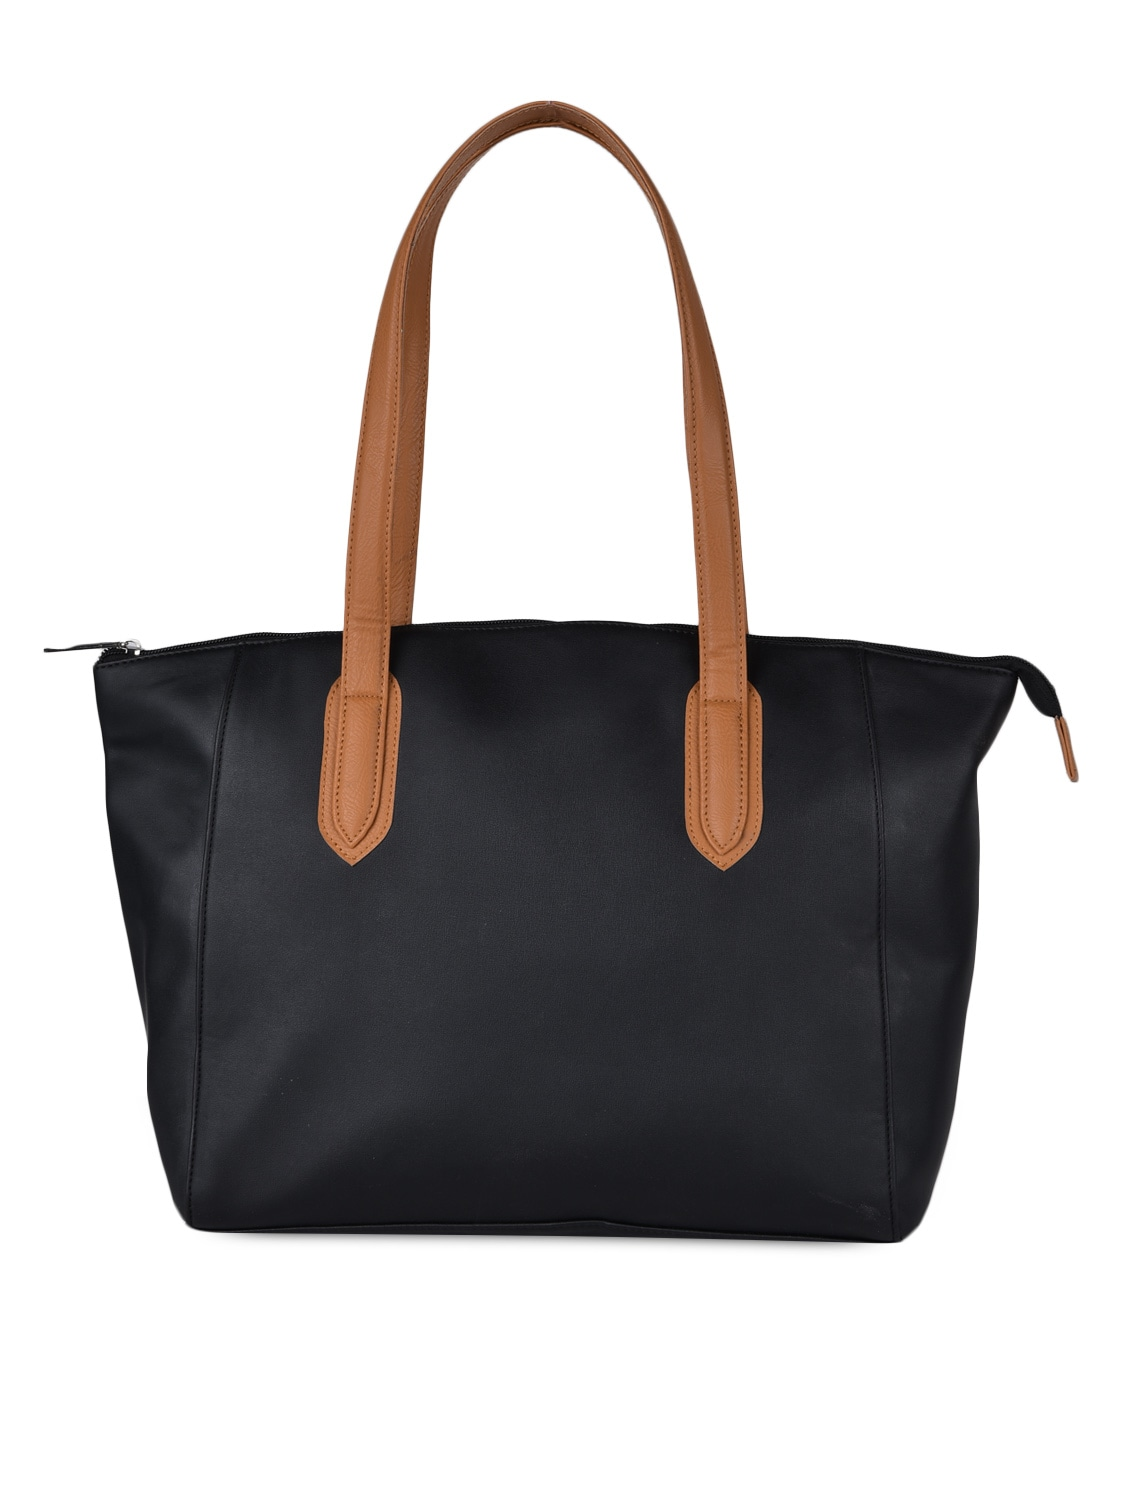 Solid Black Leatherette Handbag - AVX